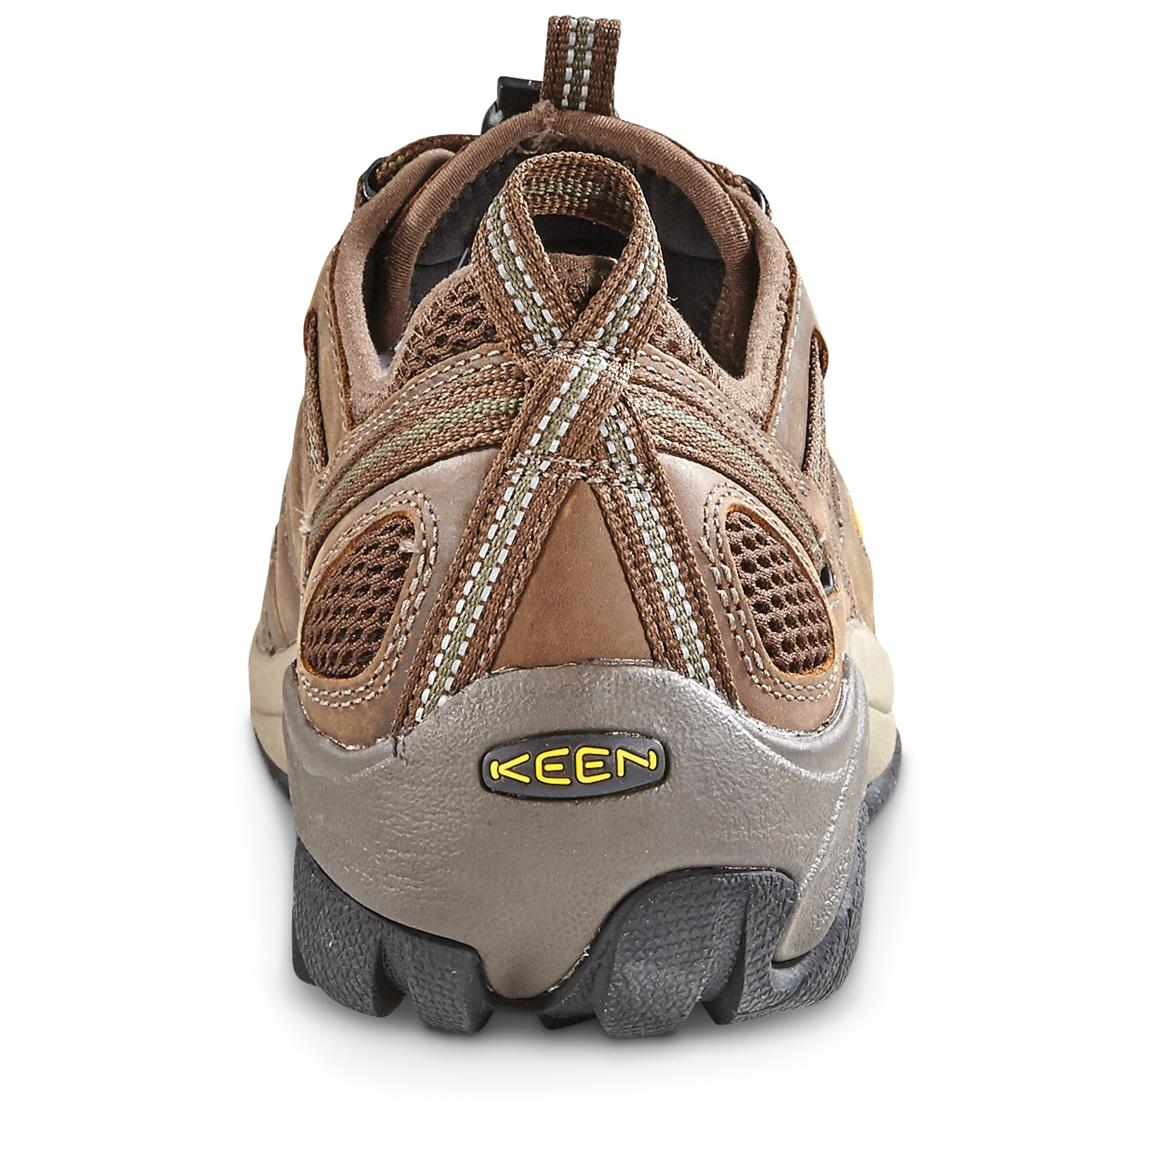 Electro static dissipative ESD footwear is constructed to reduce excess static electricity